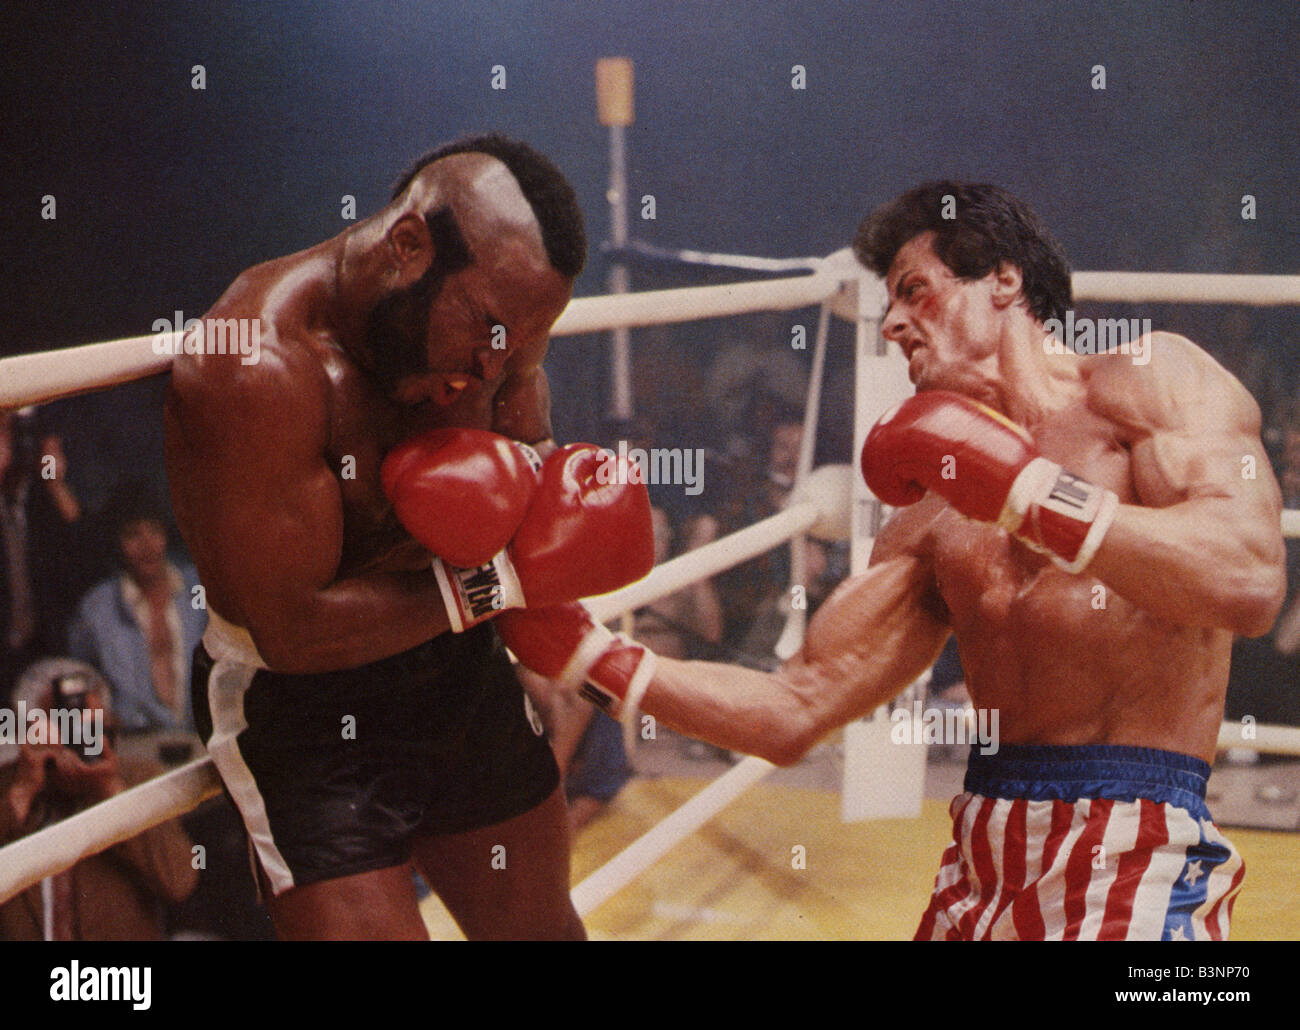 ROCKY III -  1982 UA film with Sylvester Stallone - Stock Image